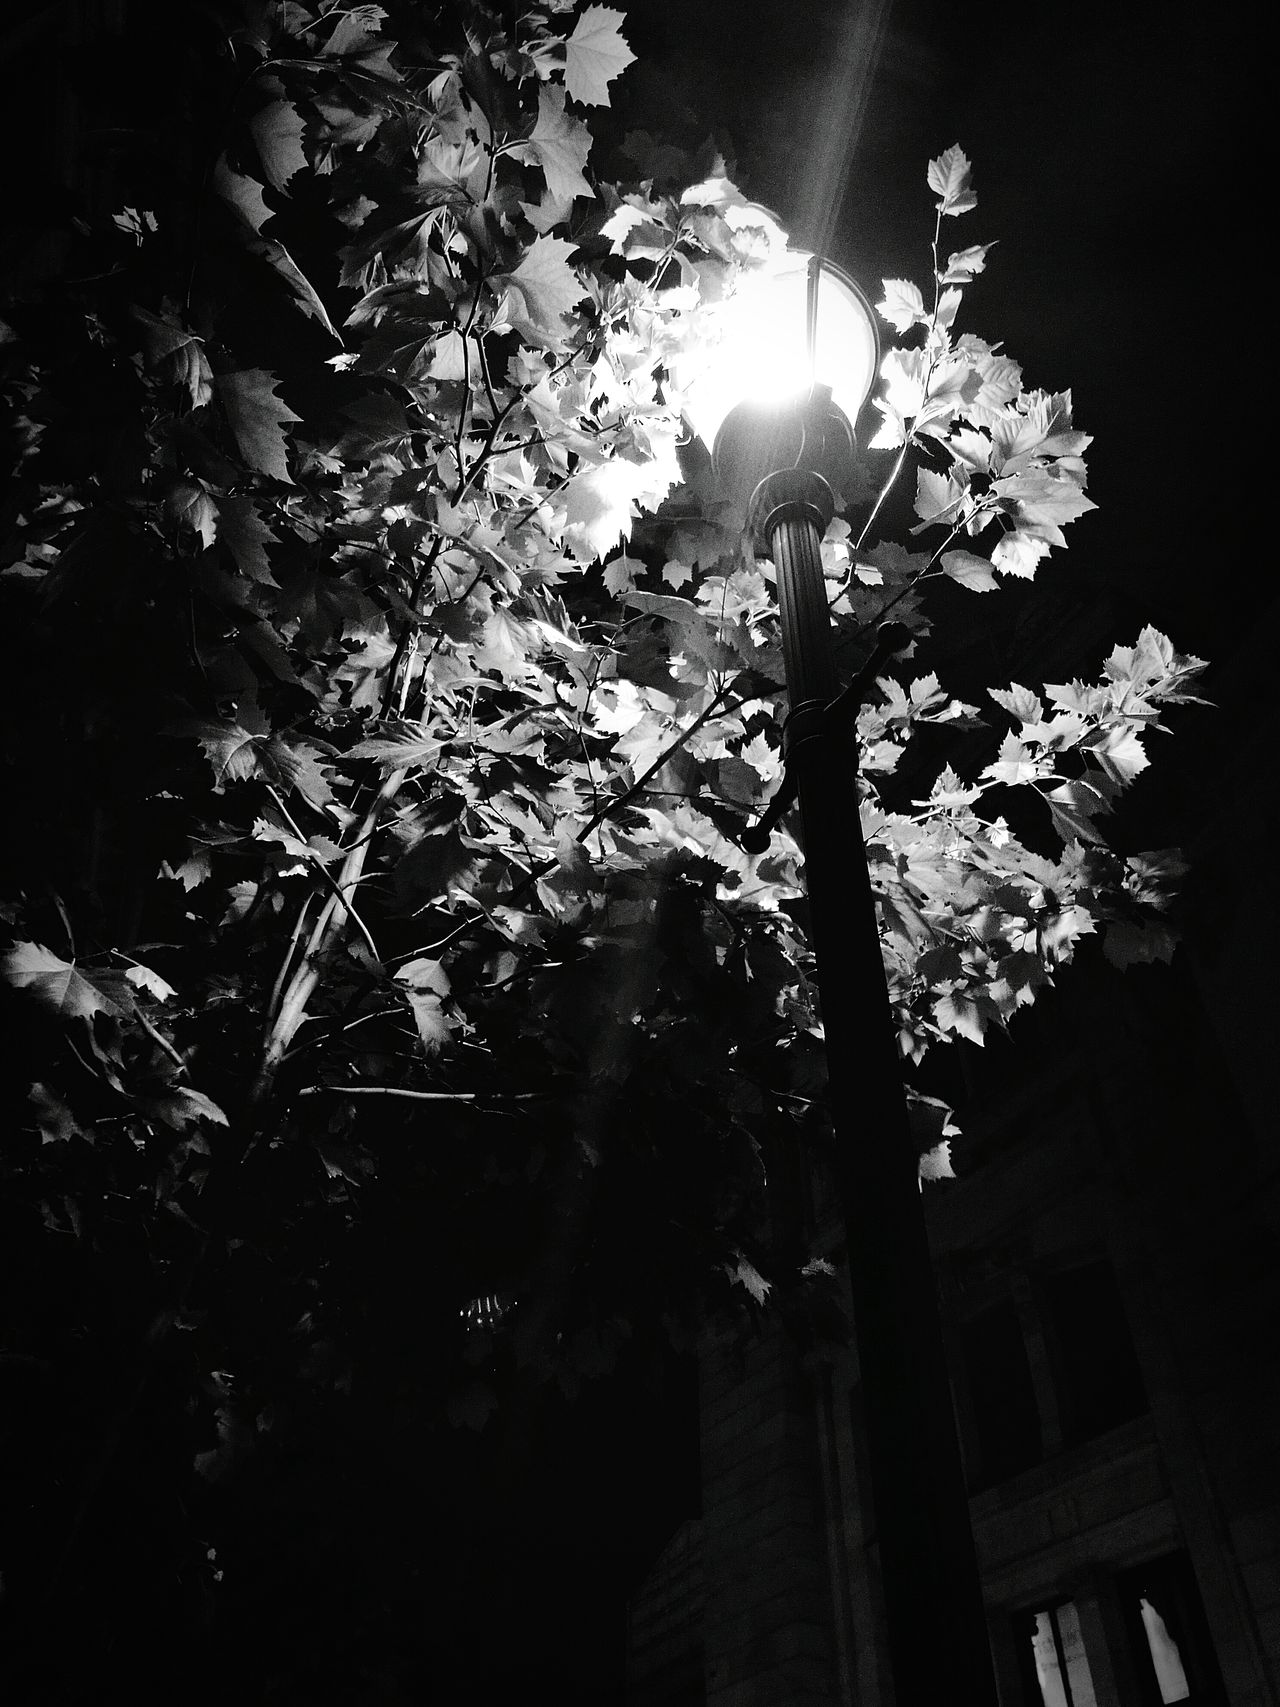 Streetlamp Light Leaves Shadows Enlightment Blackandwhite Contrast Black White Solitude Alone Darkness And Light Cities At Night OO Mission Follow_me Peaceful Lets Get Lost Trees Take A Walk Fairy Tale Monochrome Photography